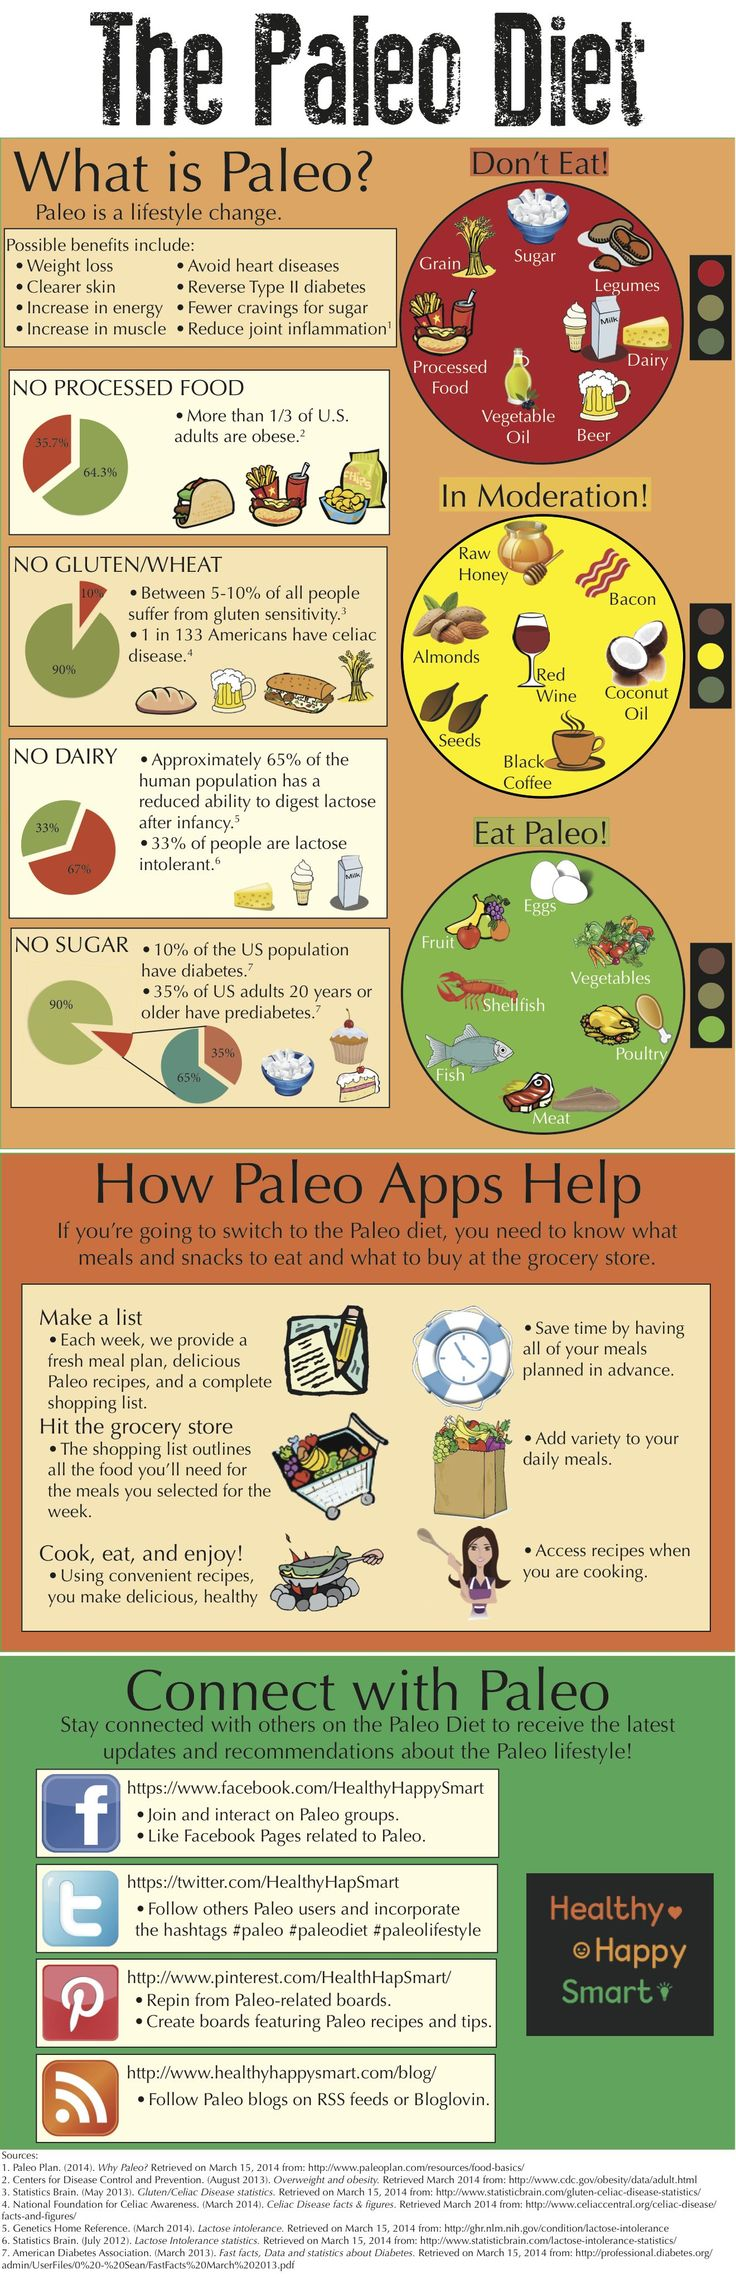 A quick Paleo Diet Infographic to help guide you on what to eat and what not to eat when following a Paleo Lifestyle.